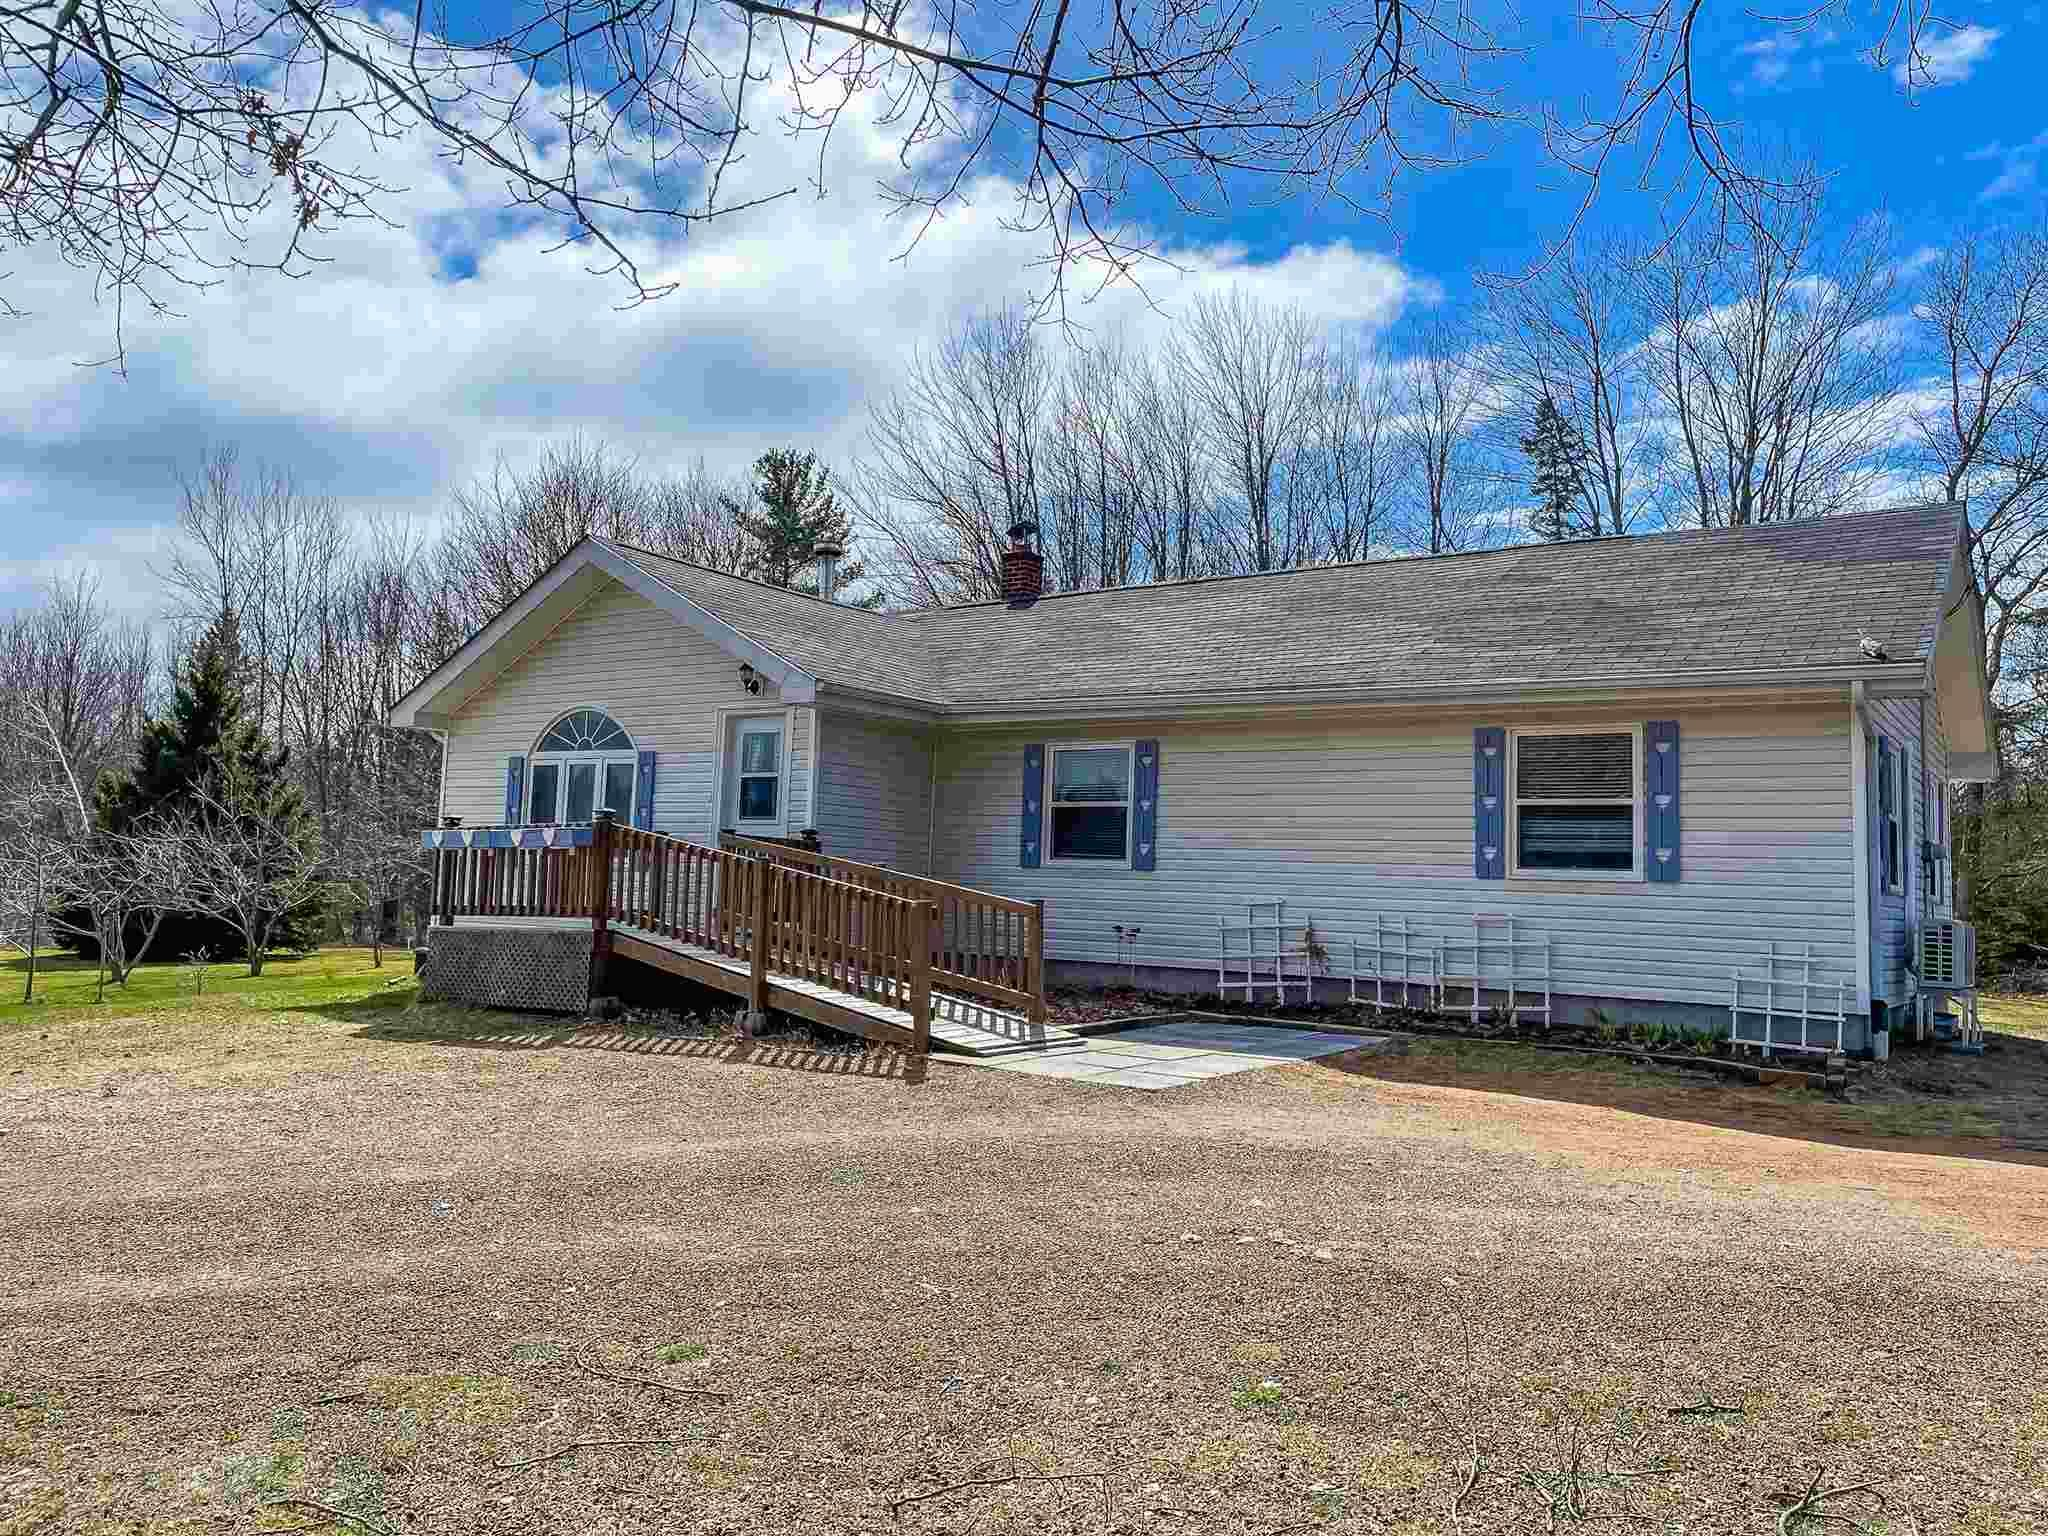 Main Photo: 109 Victoria Road in Wilmot: 400-Annapolis County Residential for sale (Annapolis Valley)  : MLS®# 202108275